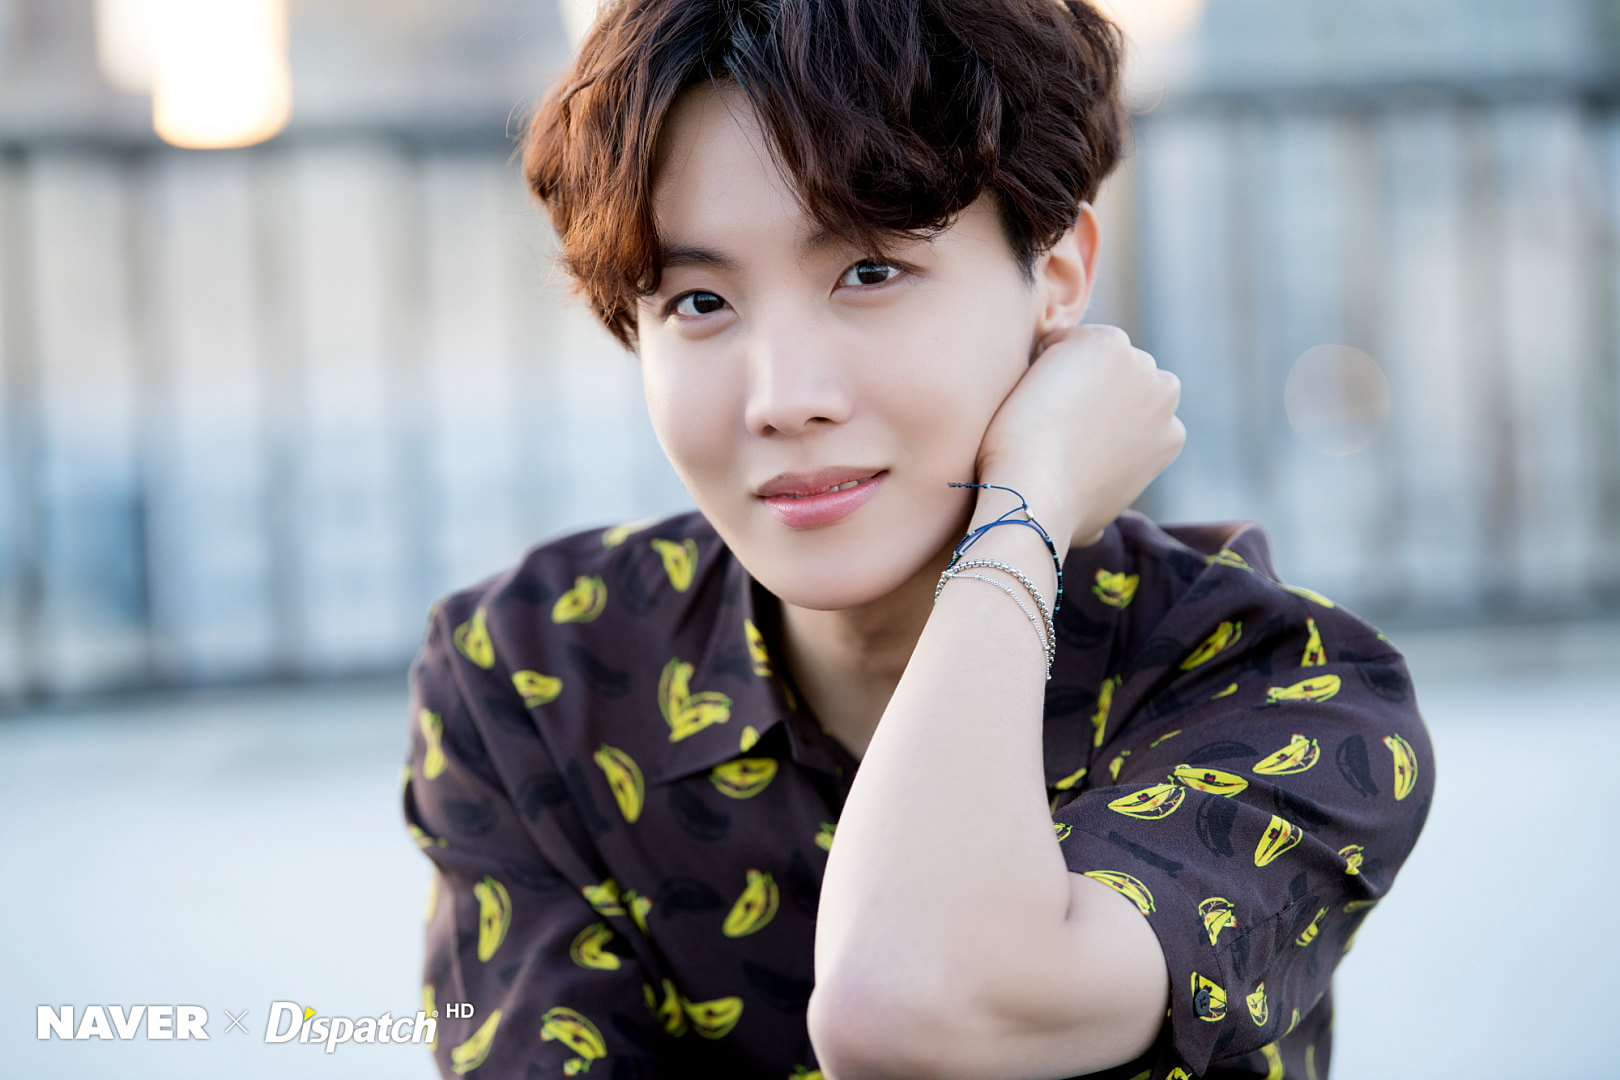 → fiche terminée - Page 64 J-Hope-x-Dispatch-j-hope-bts-41420121-1620-1080